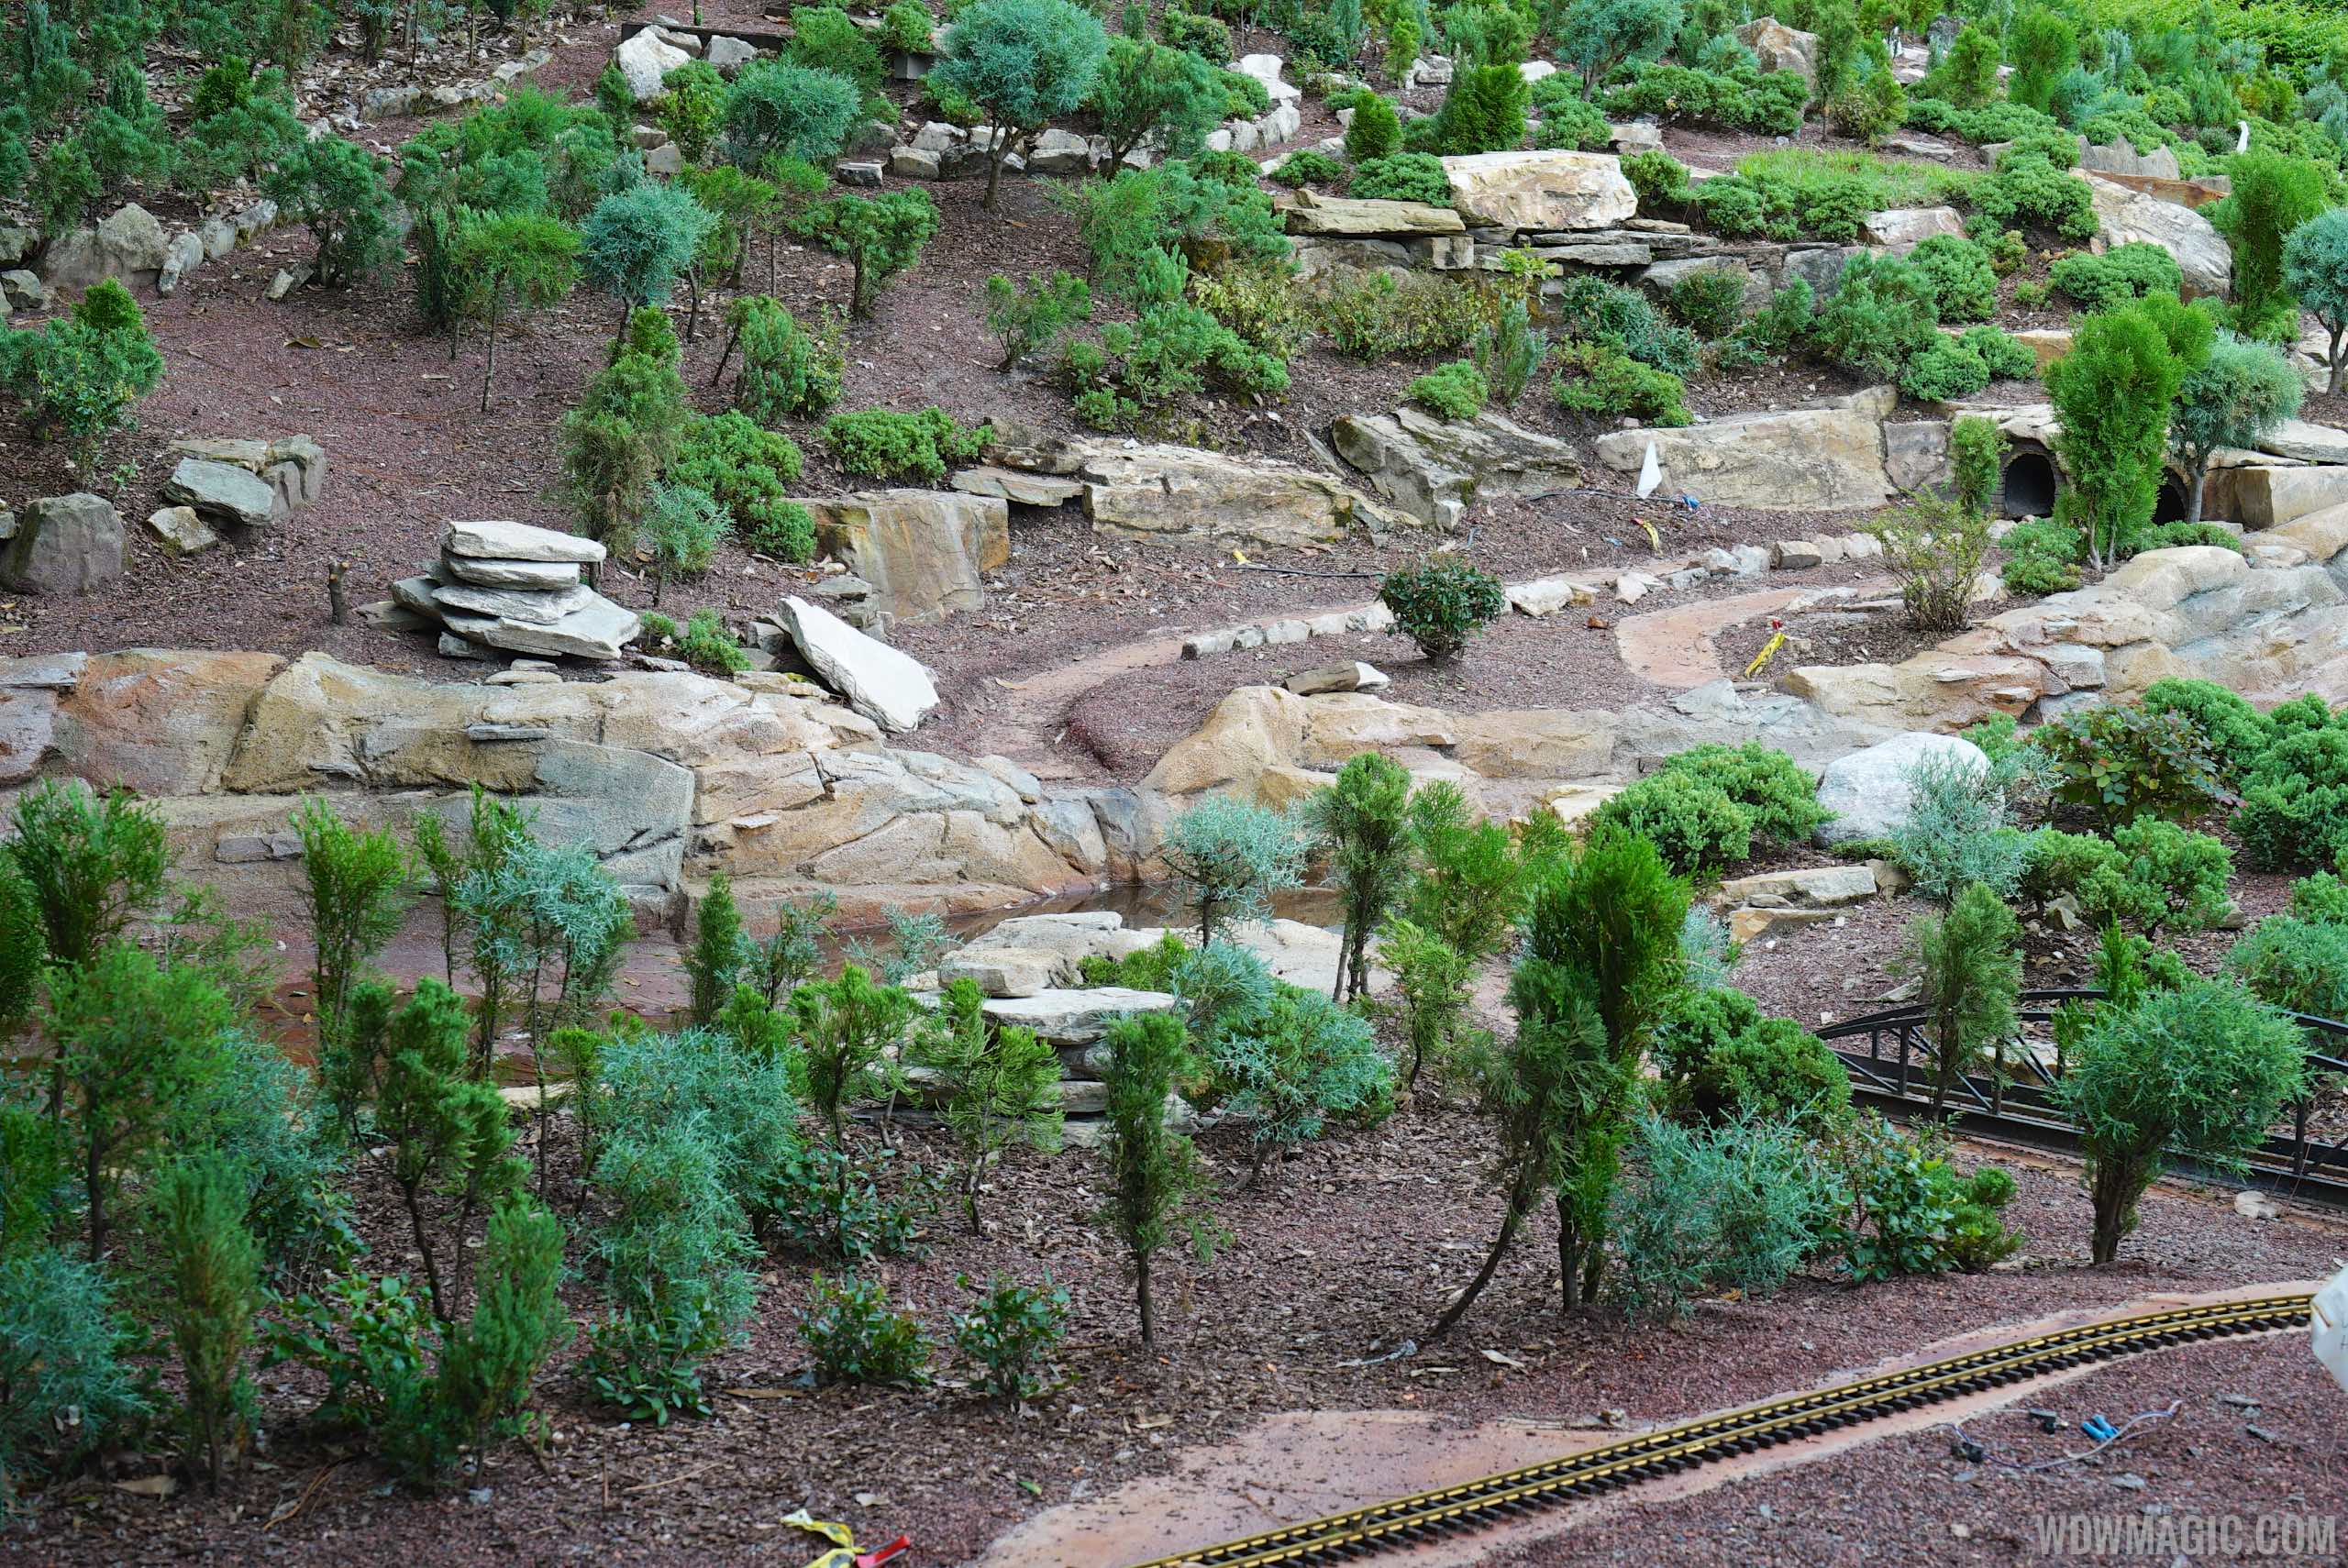 Model Railroad refurbishment